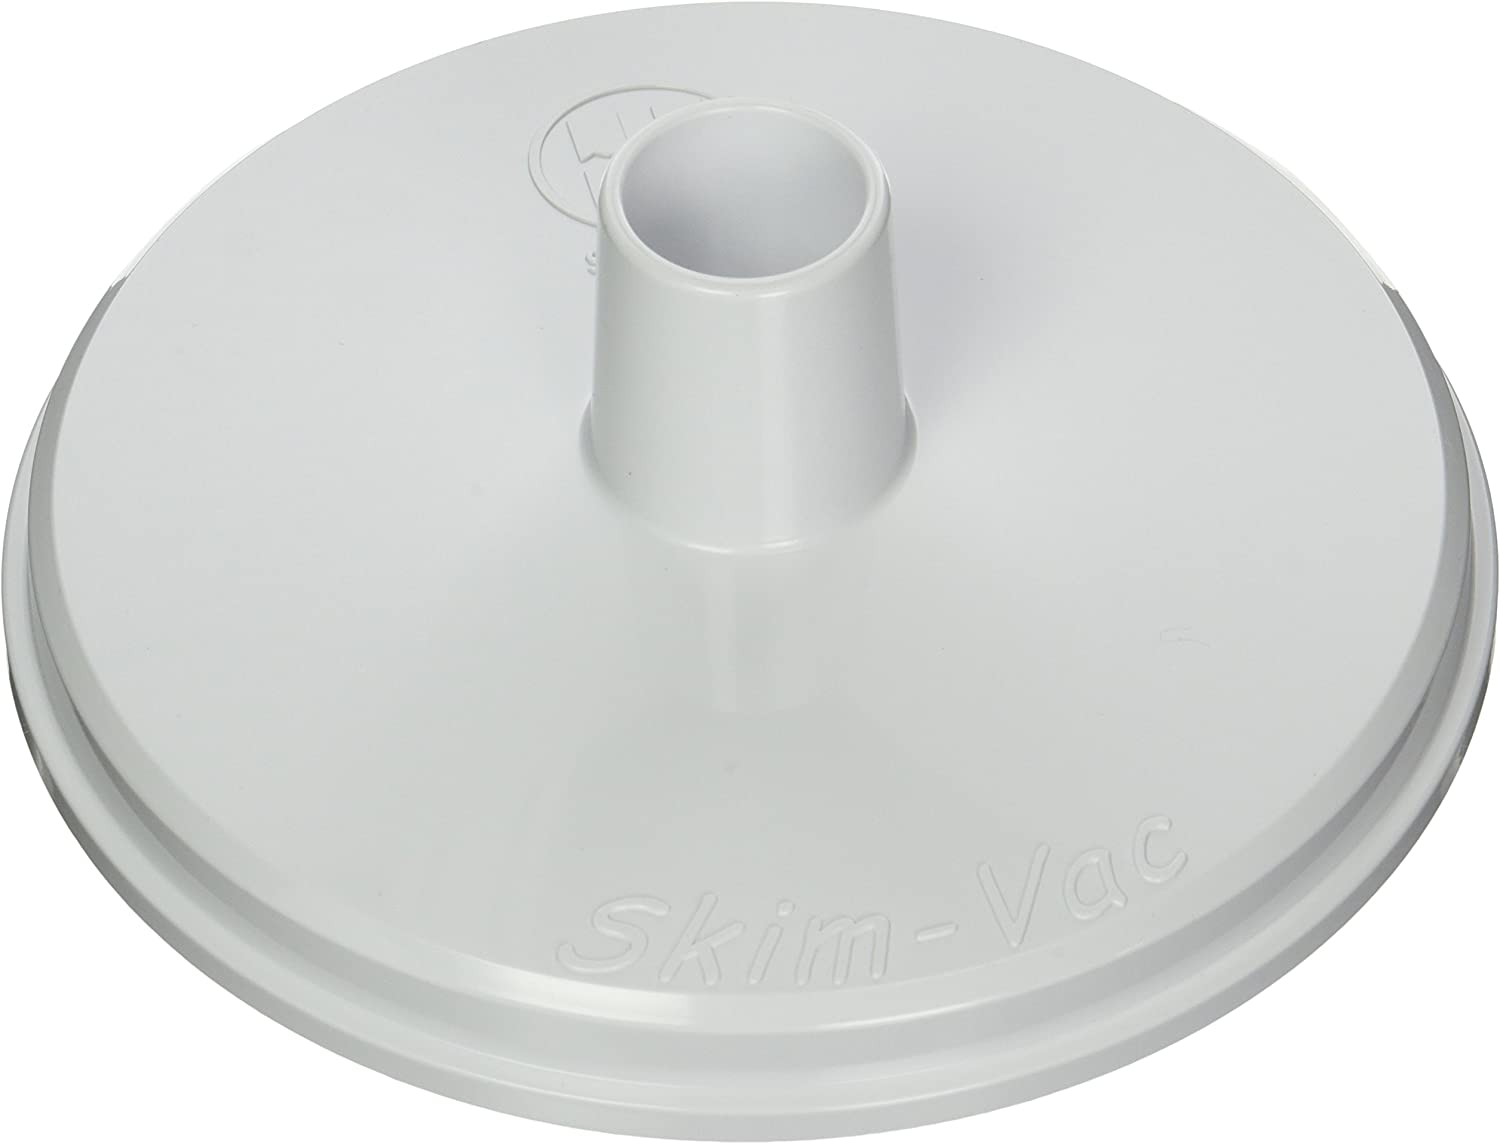 Hayward SP1106 Skim Vac In-Ground Pool Skimmer